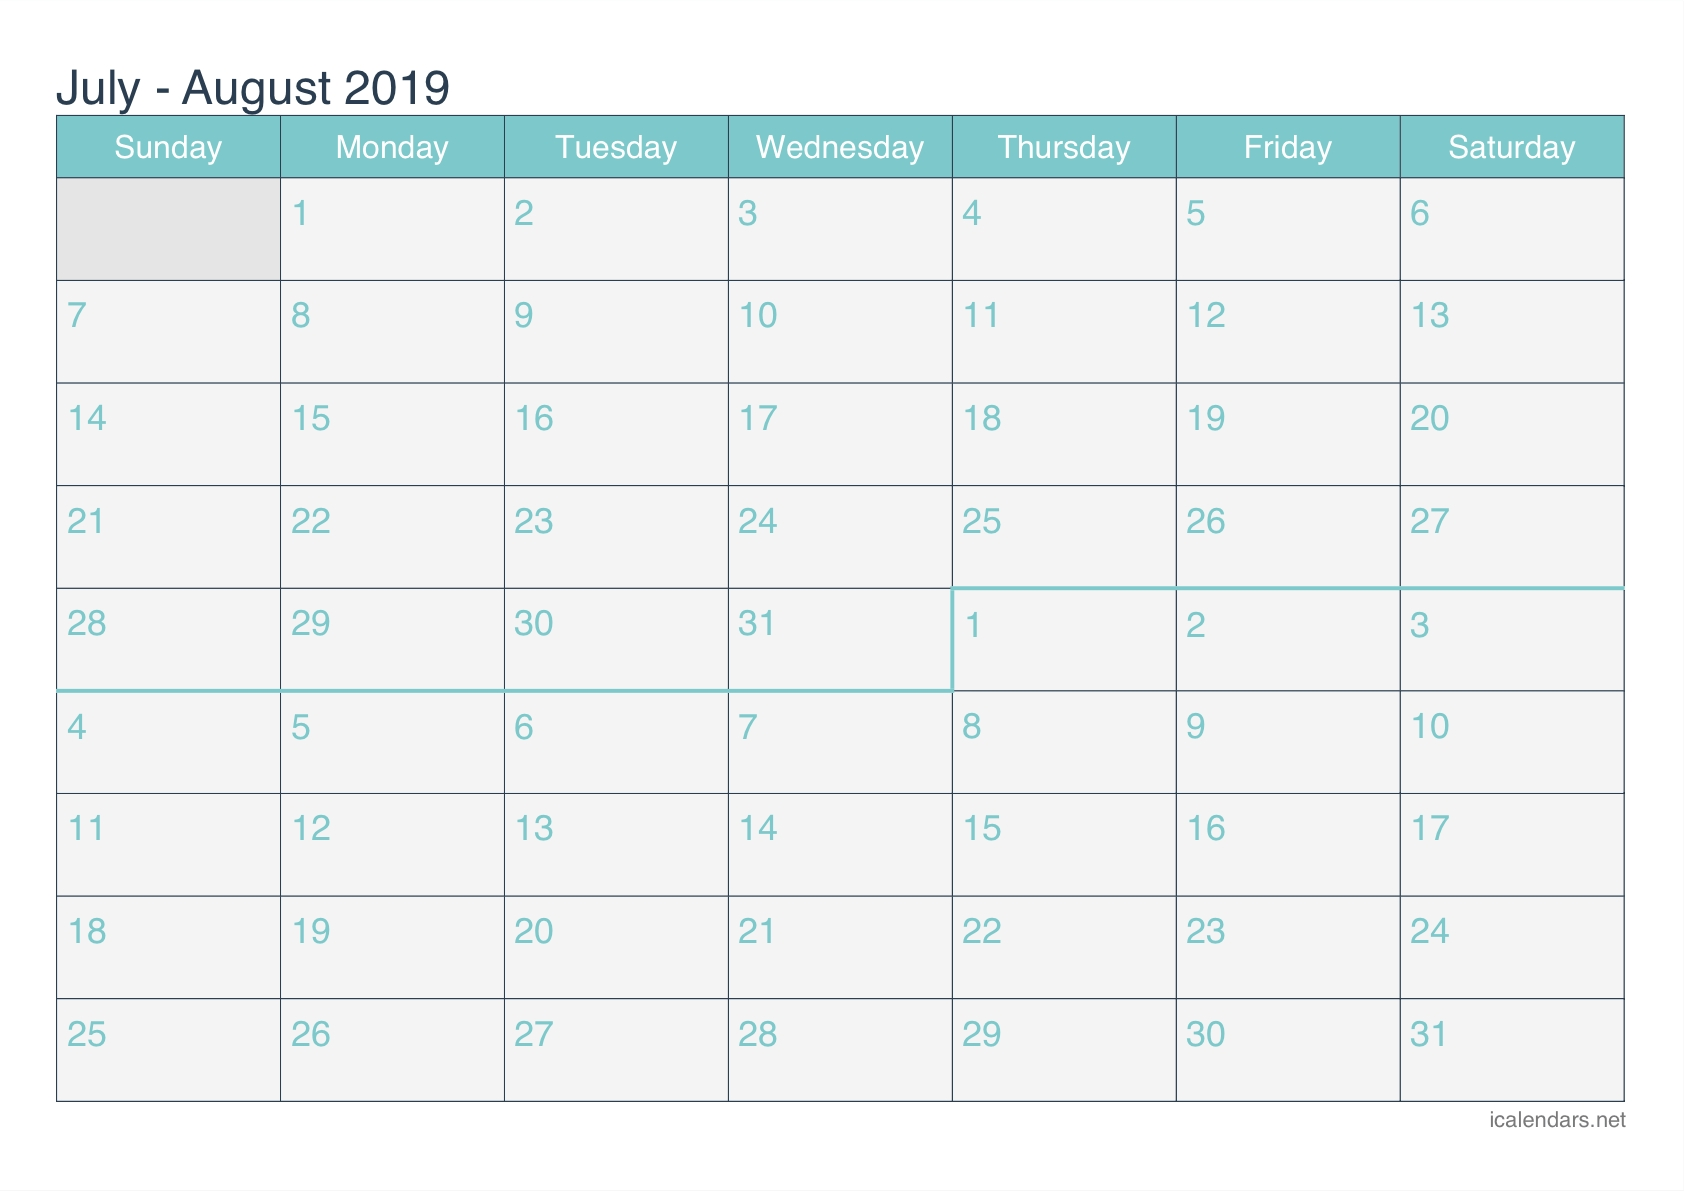 July And August 2019 Printable Calendar - Icalendars regarding Small Calender For July And Agust